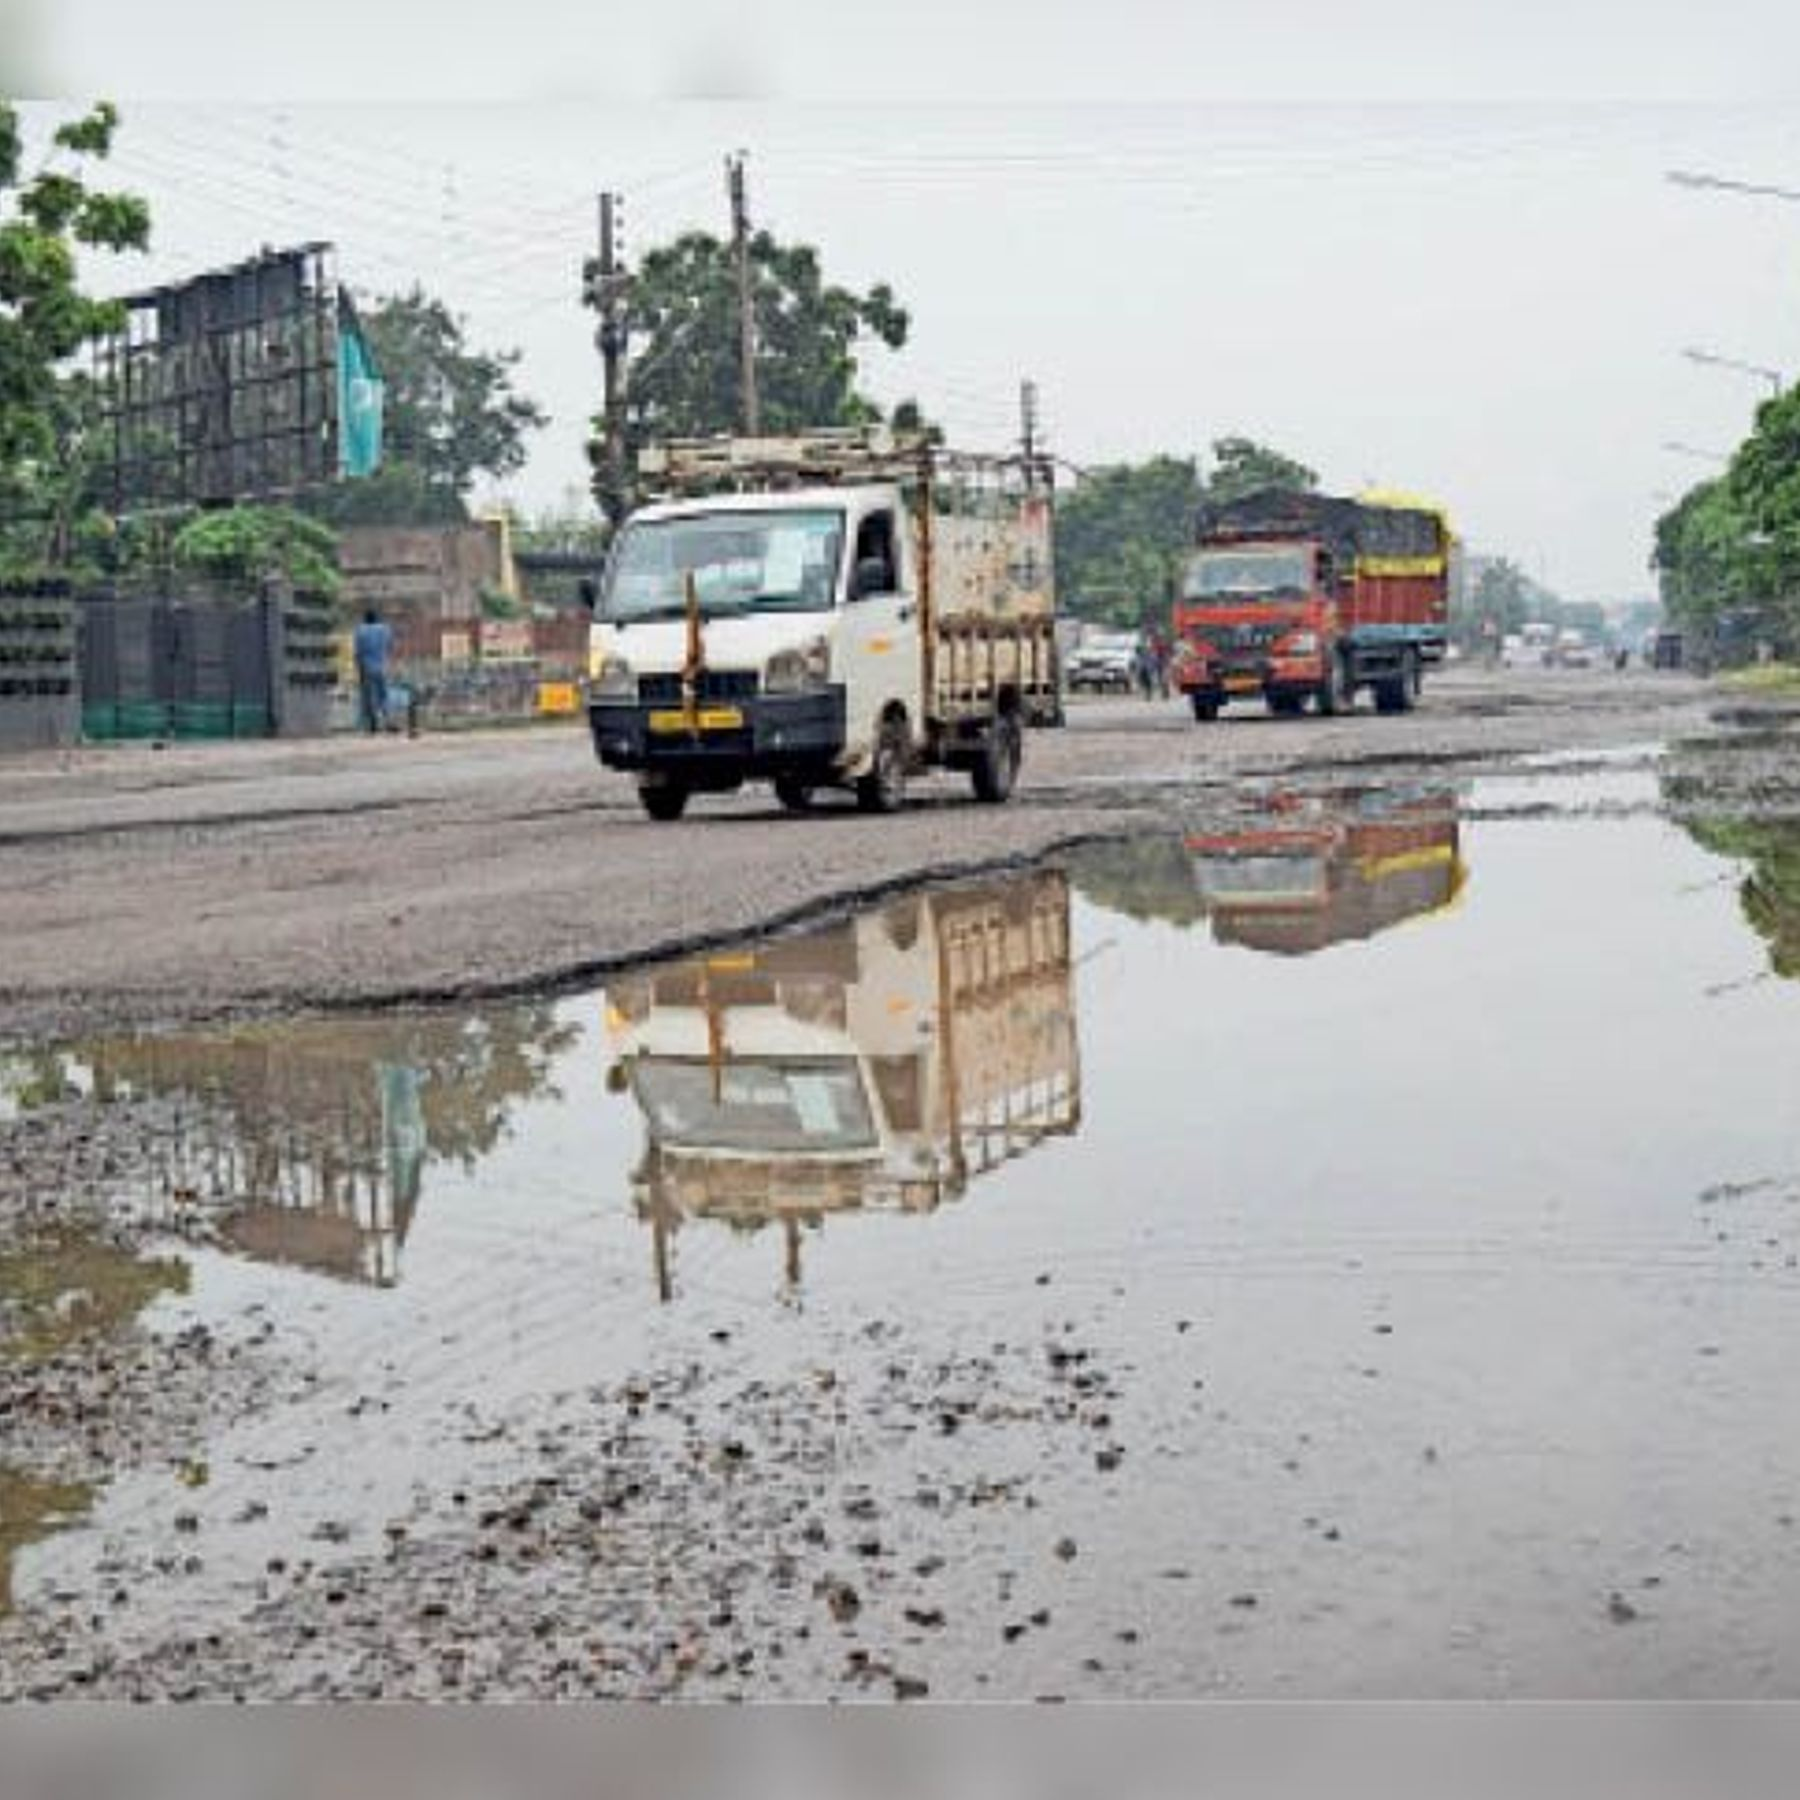 Despite the annual expenditure of Rs 3.20 crore on maintenance, potholes in  the roads emerged in the rain, bypassing the solution   मेंटेनेंस पर सालाना  3.20 करोड़ रुपए खर्च के बावजूद बारिश